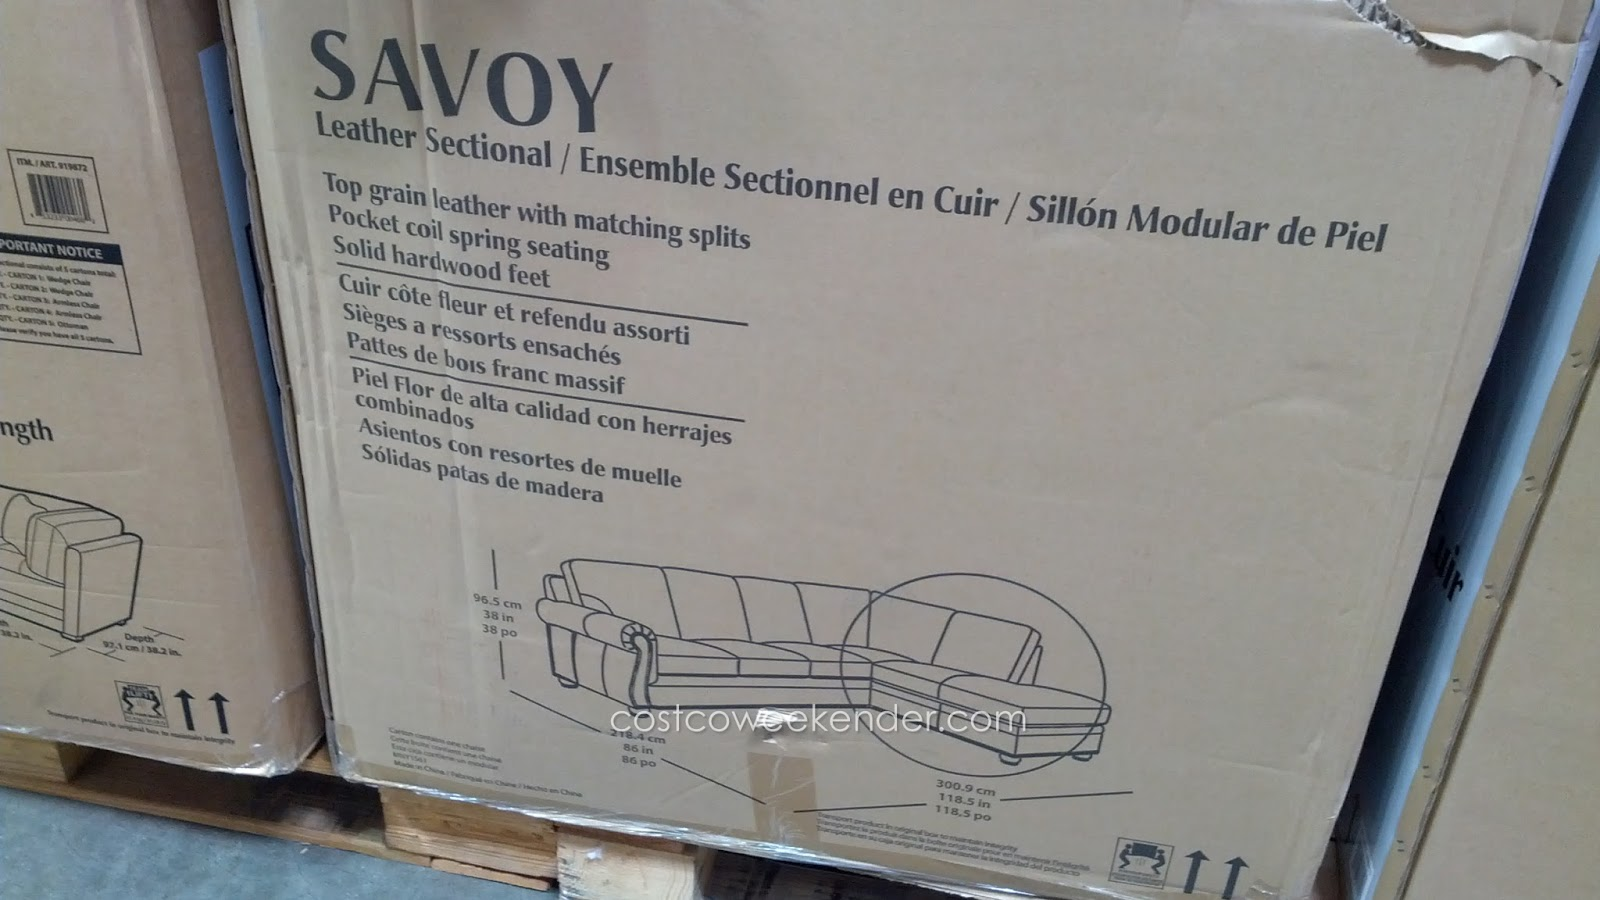 Savoy Leather Sofa Costco Review Velvet Sofas For Sale Marks And Cohen 2 Piece Sectional Couch